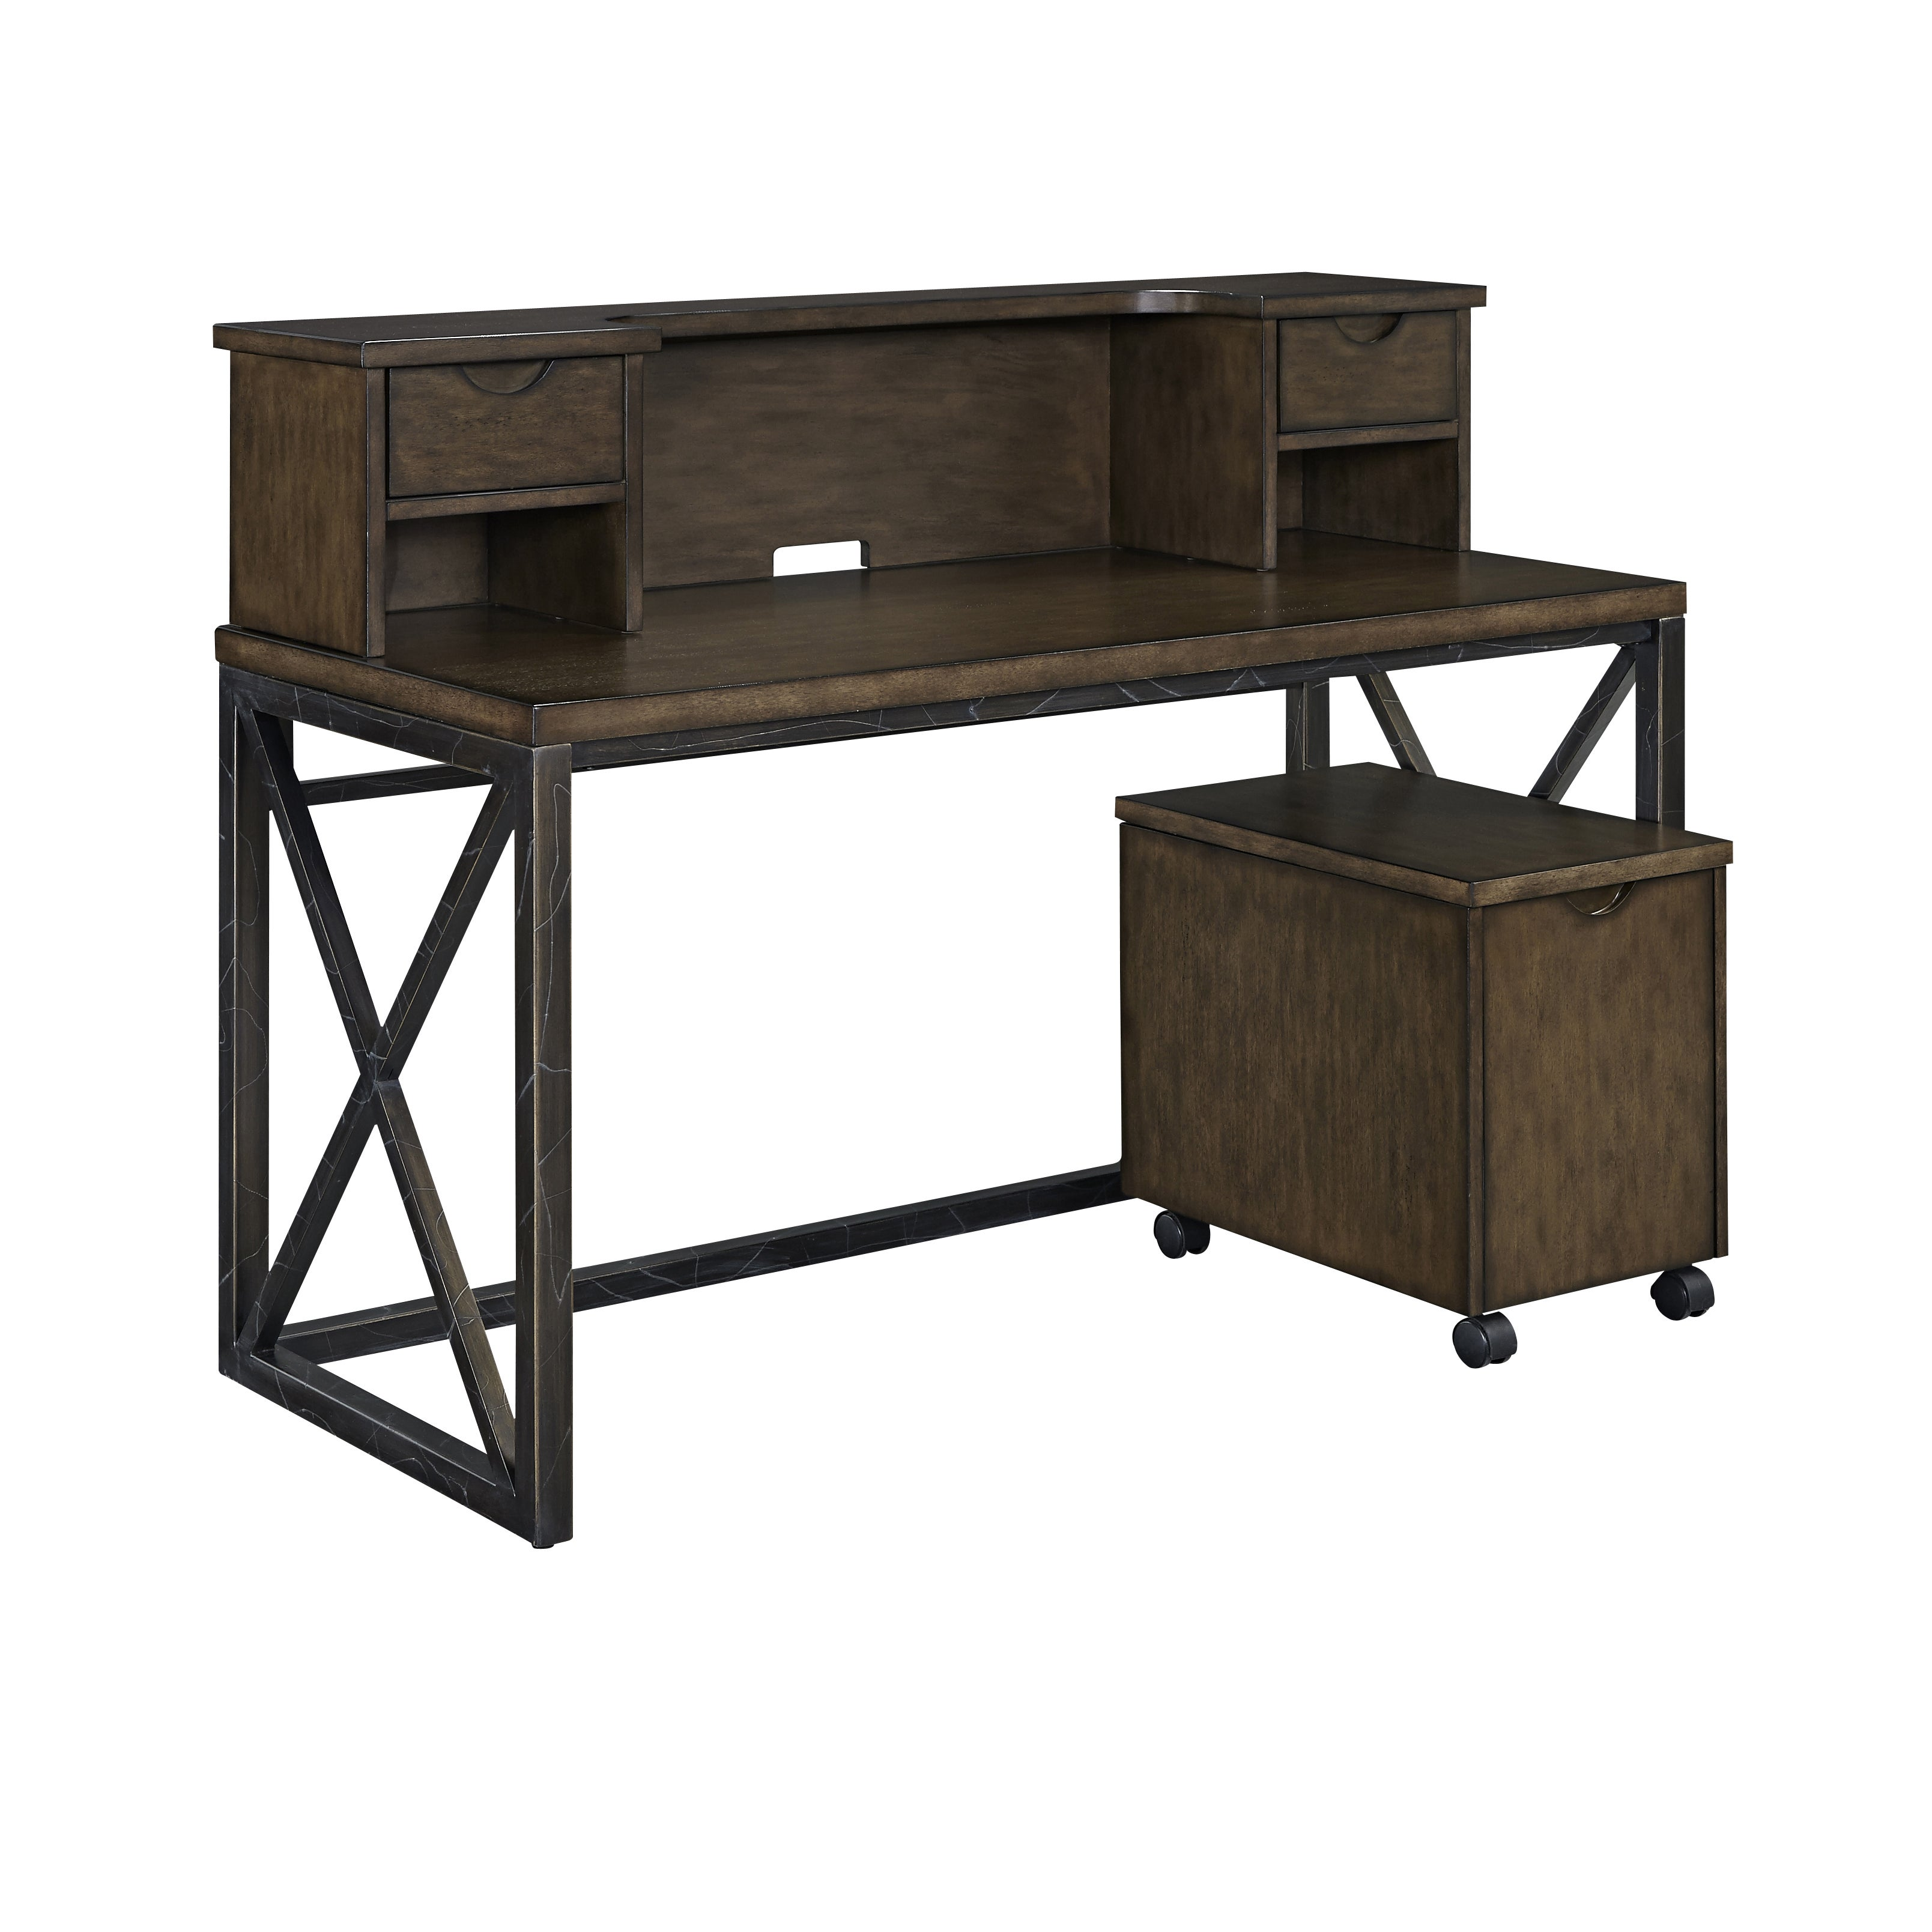 office desk styles.  Styles Shop Xcel Office Desk With Hutch U0026 Mobile File By Home Styles  Free  Shipping Today Overstockcom 13768895 With